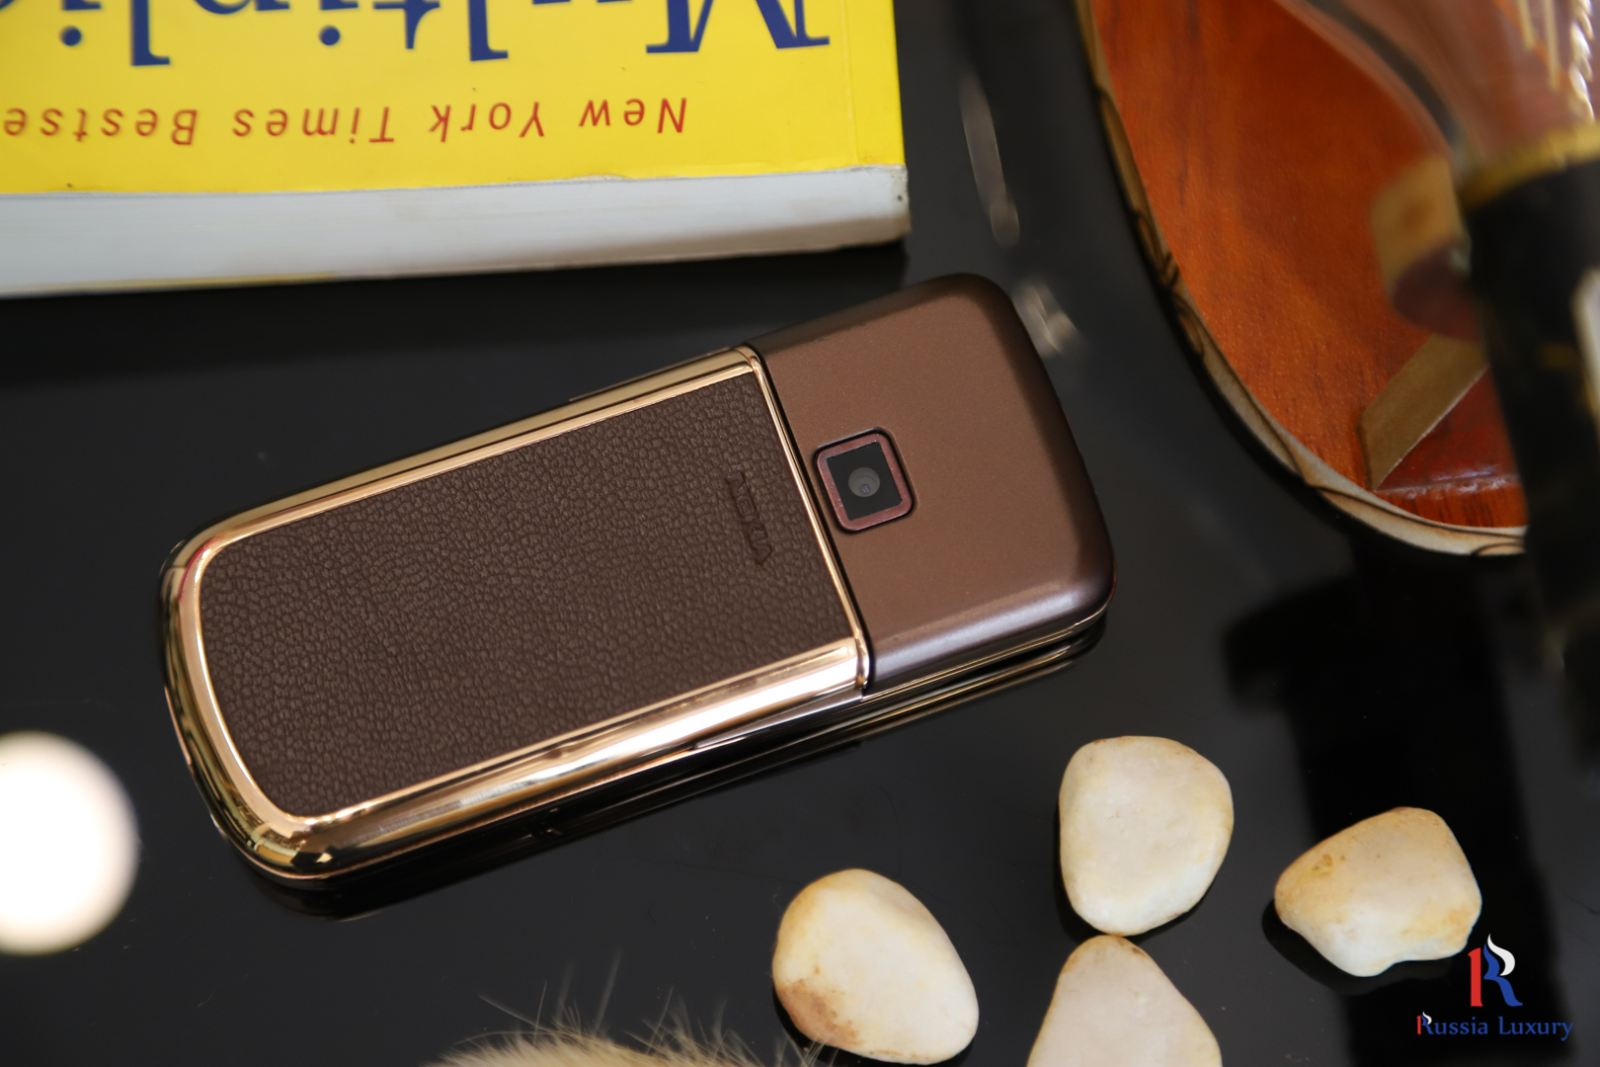 Nokia 8800 Rose Gold (Da nâu) 6